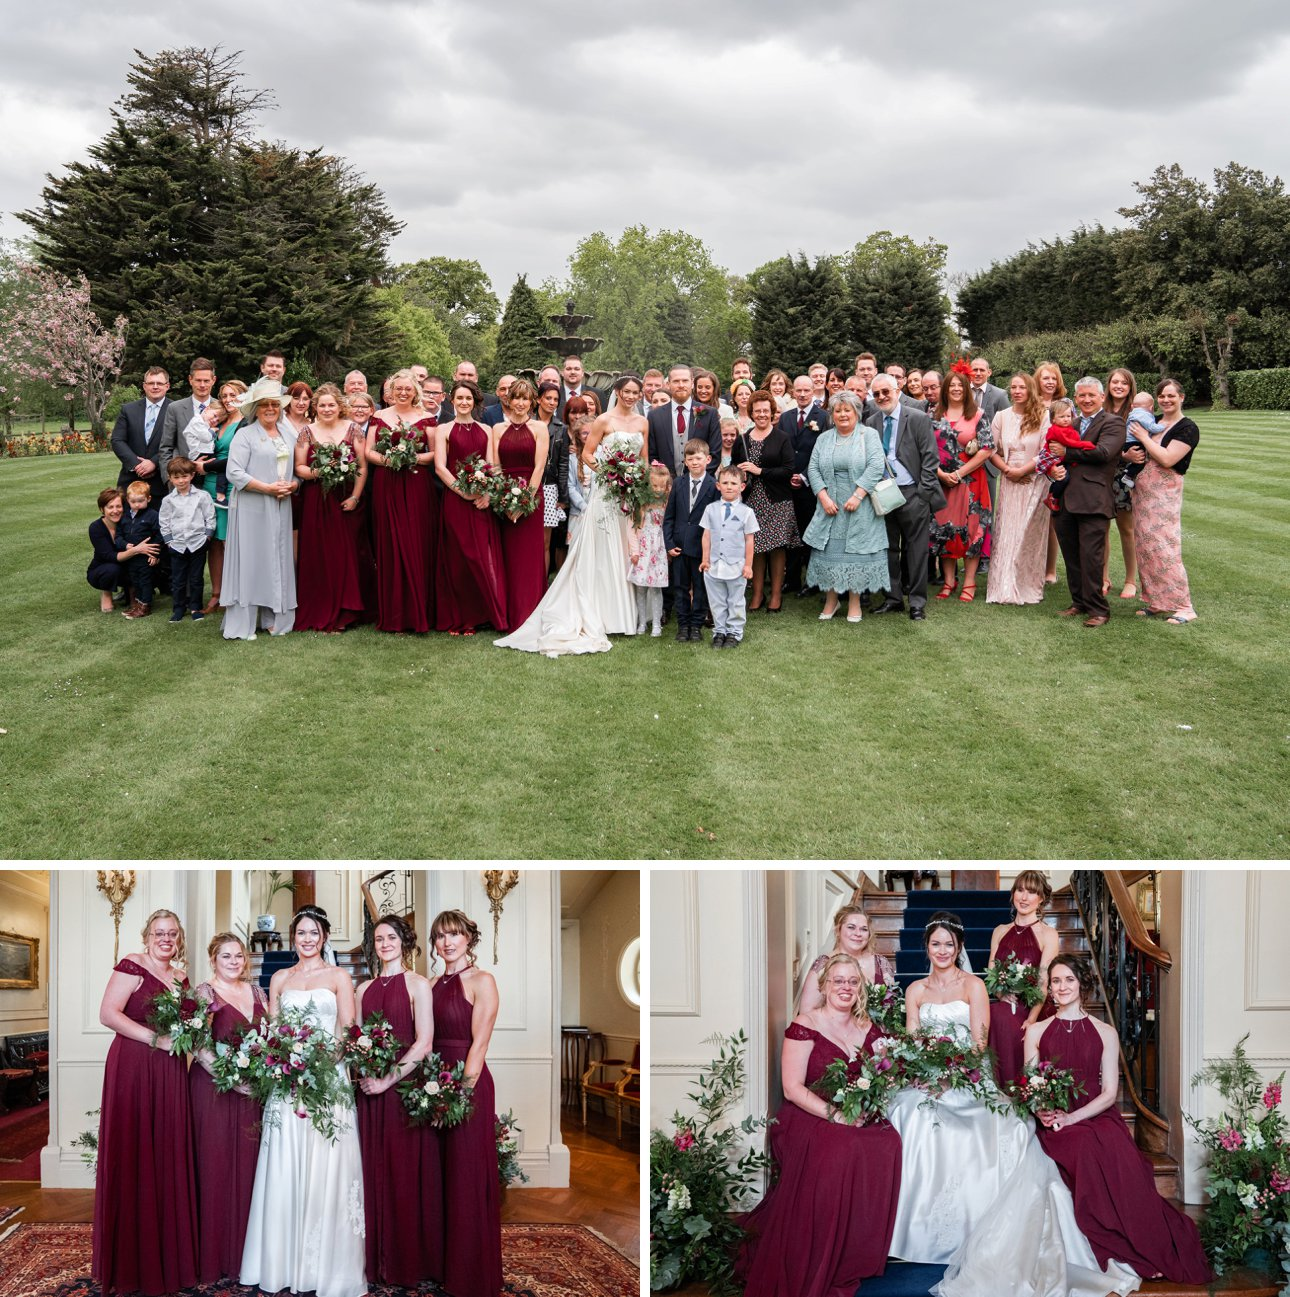 A photo of everyone at a wedding at The Lawn, Rochford.